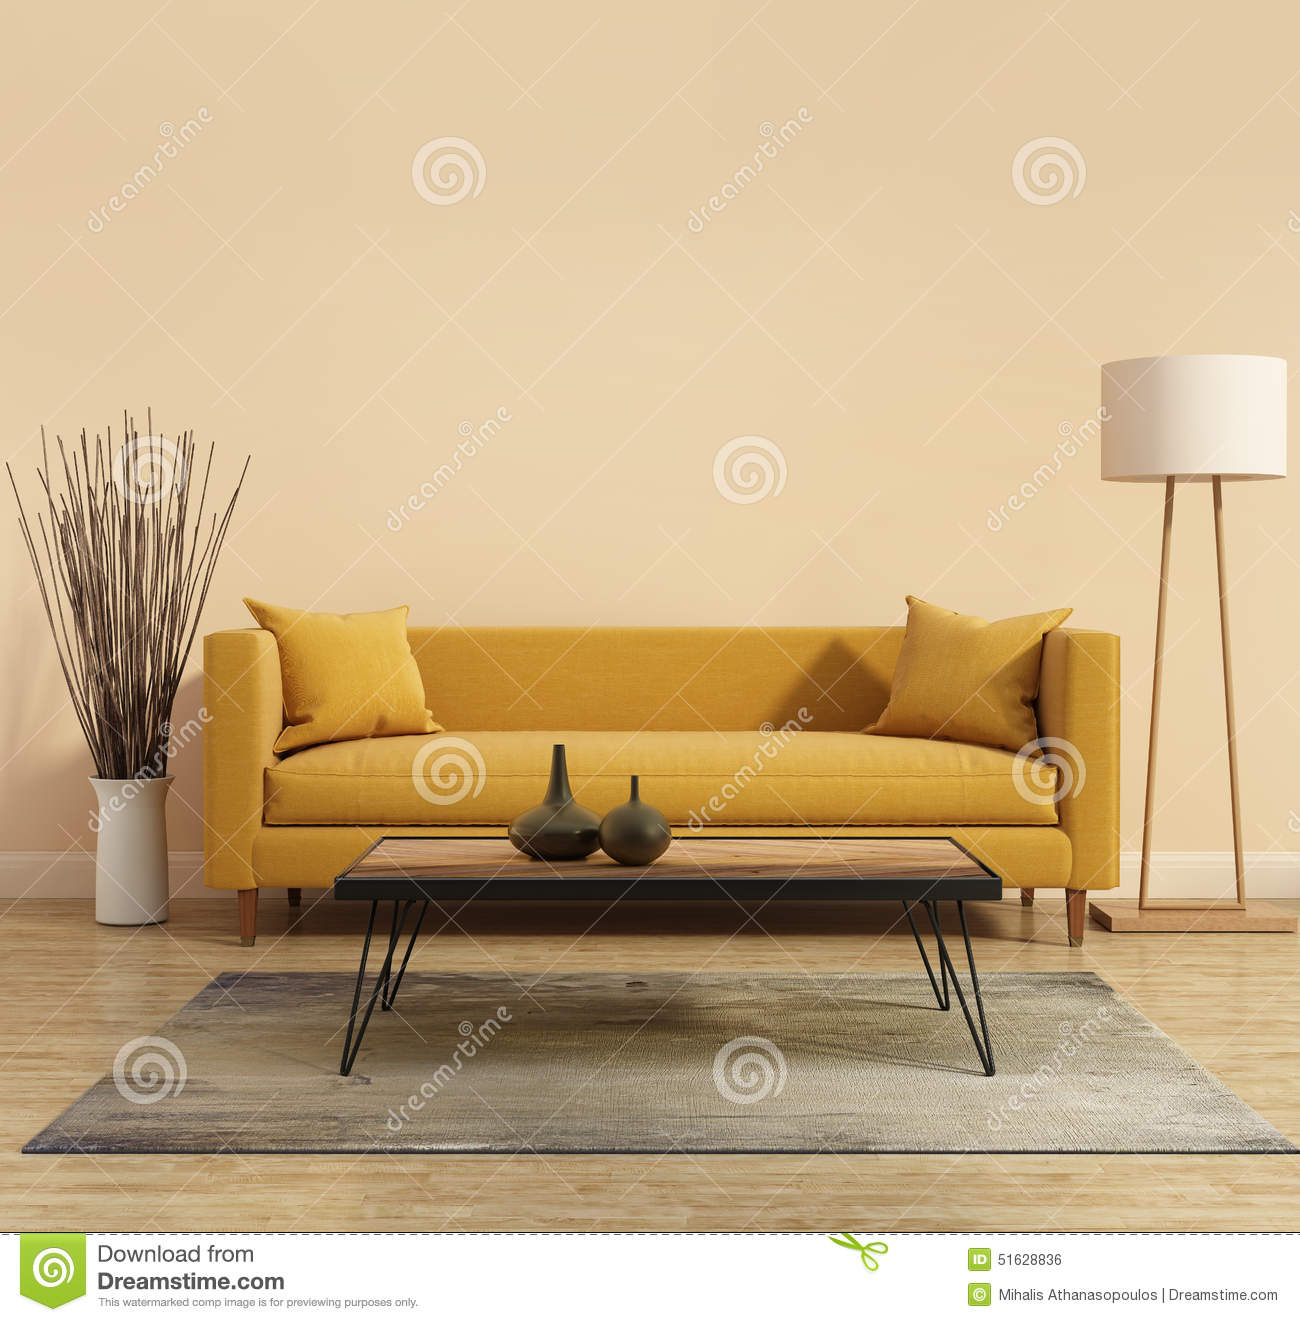 Modern modern interior with a yellow sofa in the living for Interior design living room yellow